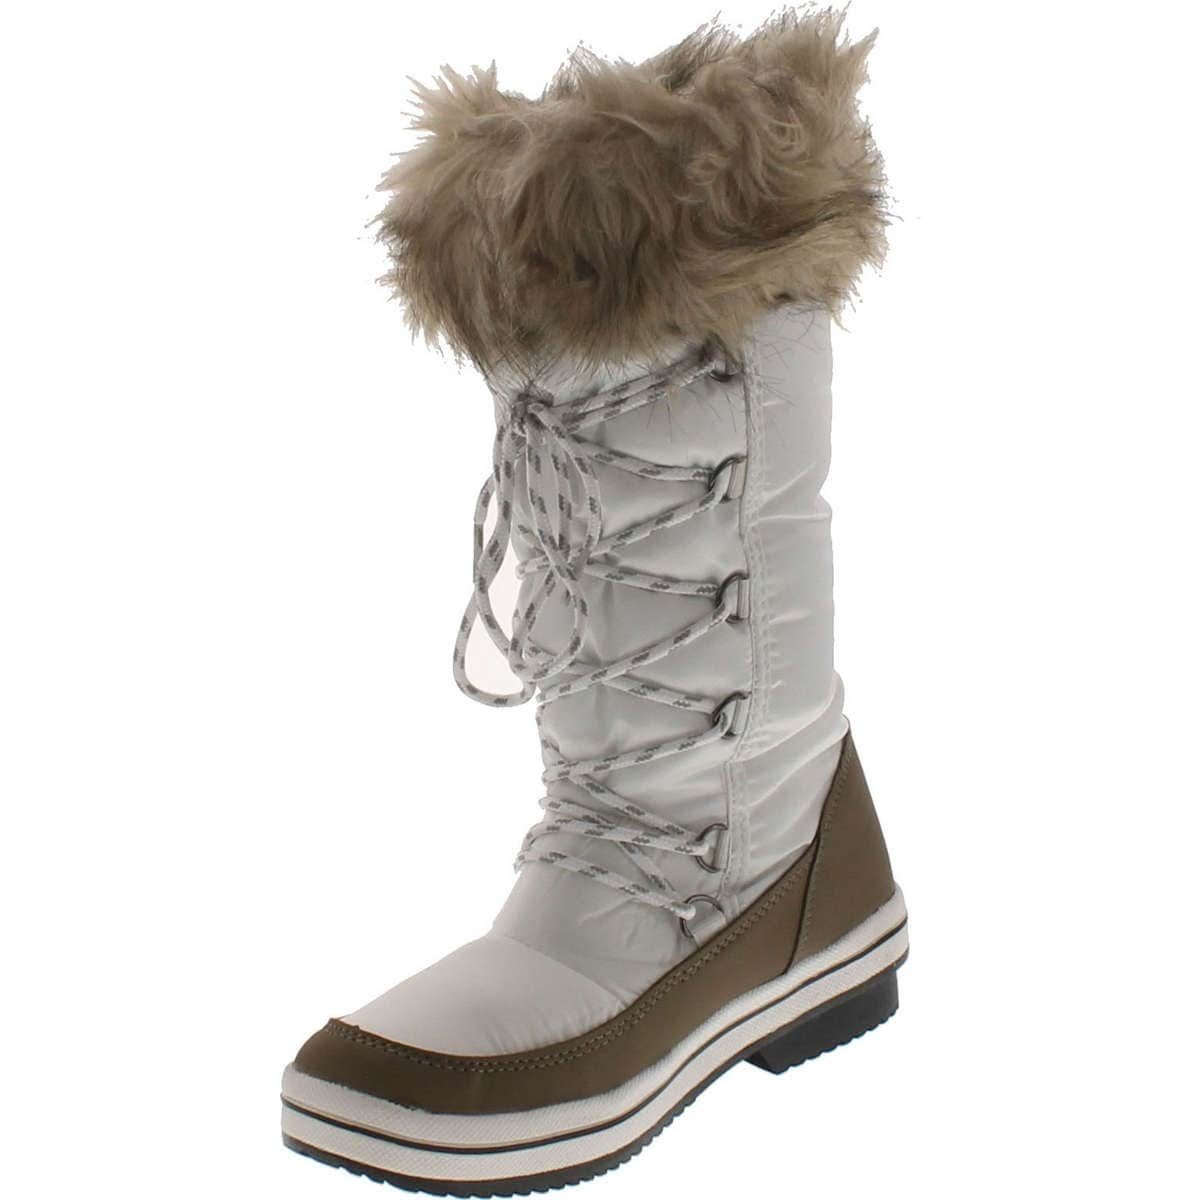 18902cc4561d Buy Snow Women s Boots Online at Overstock